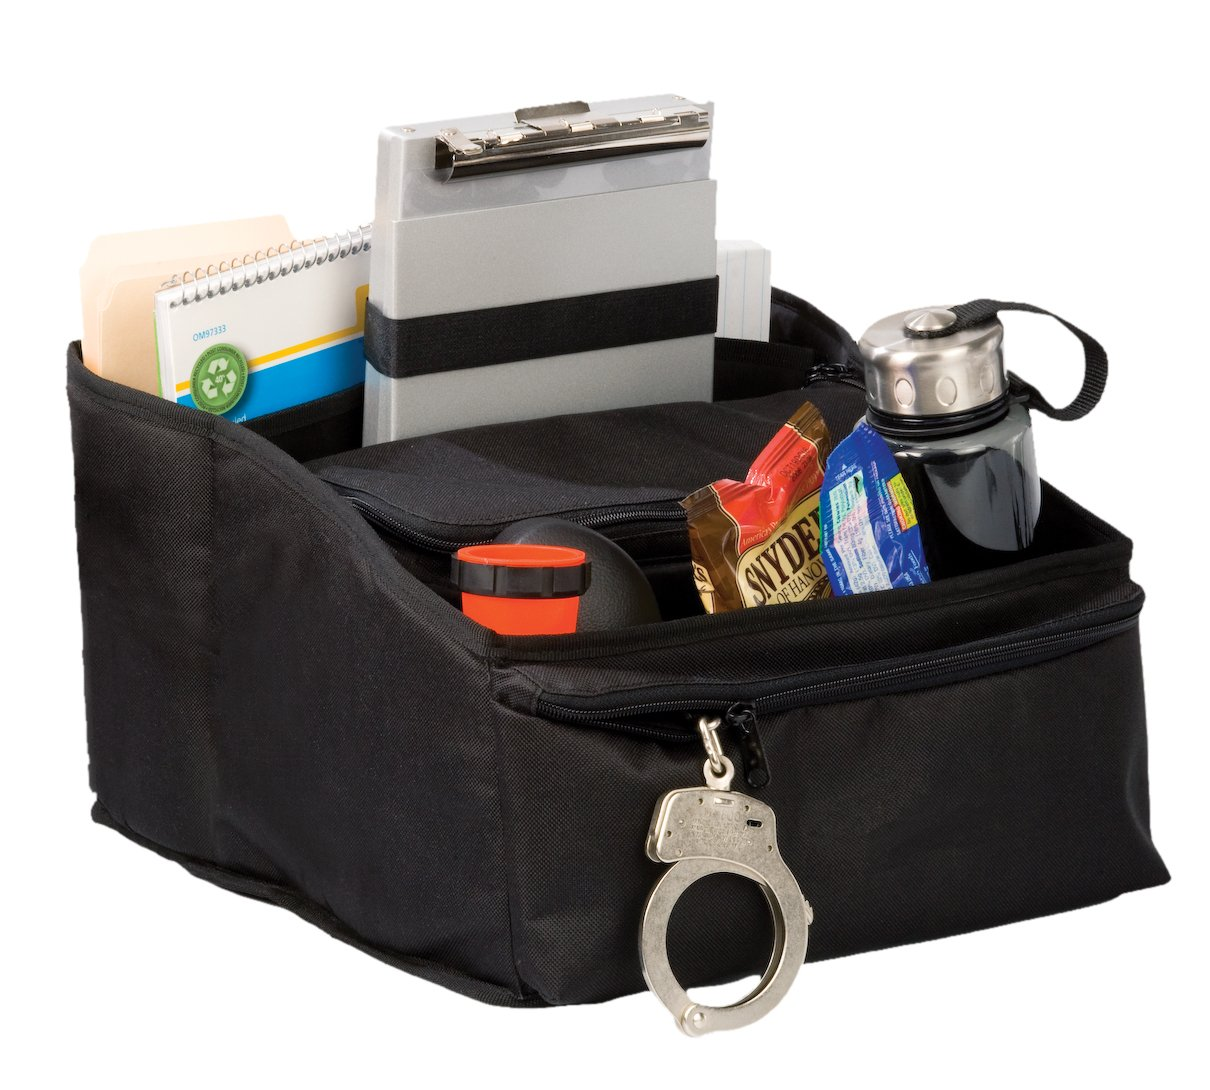 Uncle Mike's Law Enforcement Deluxe Car Seat Organizer, Black by Uncle Mike's